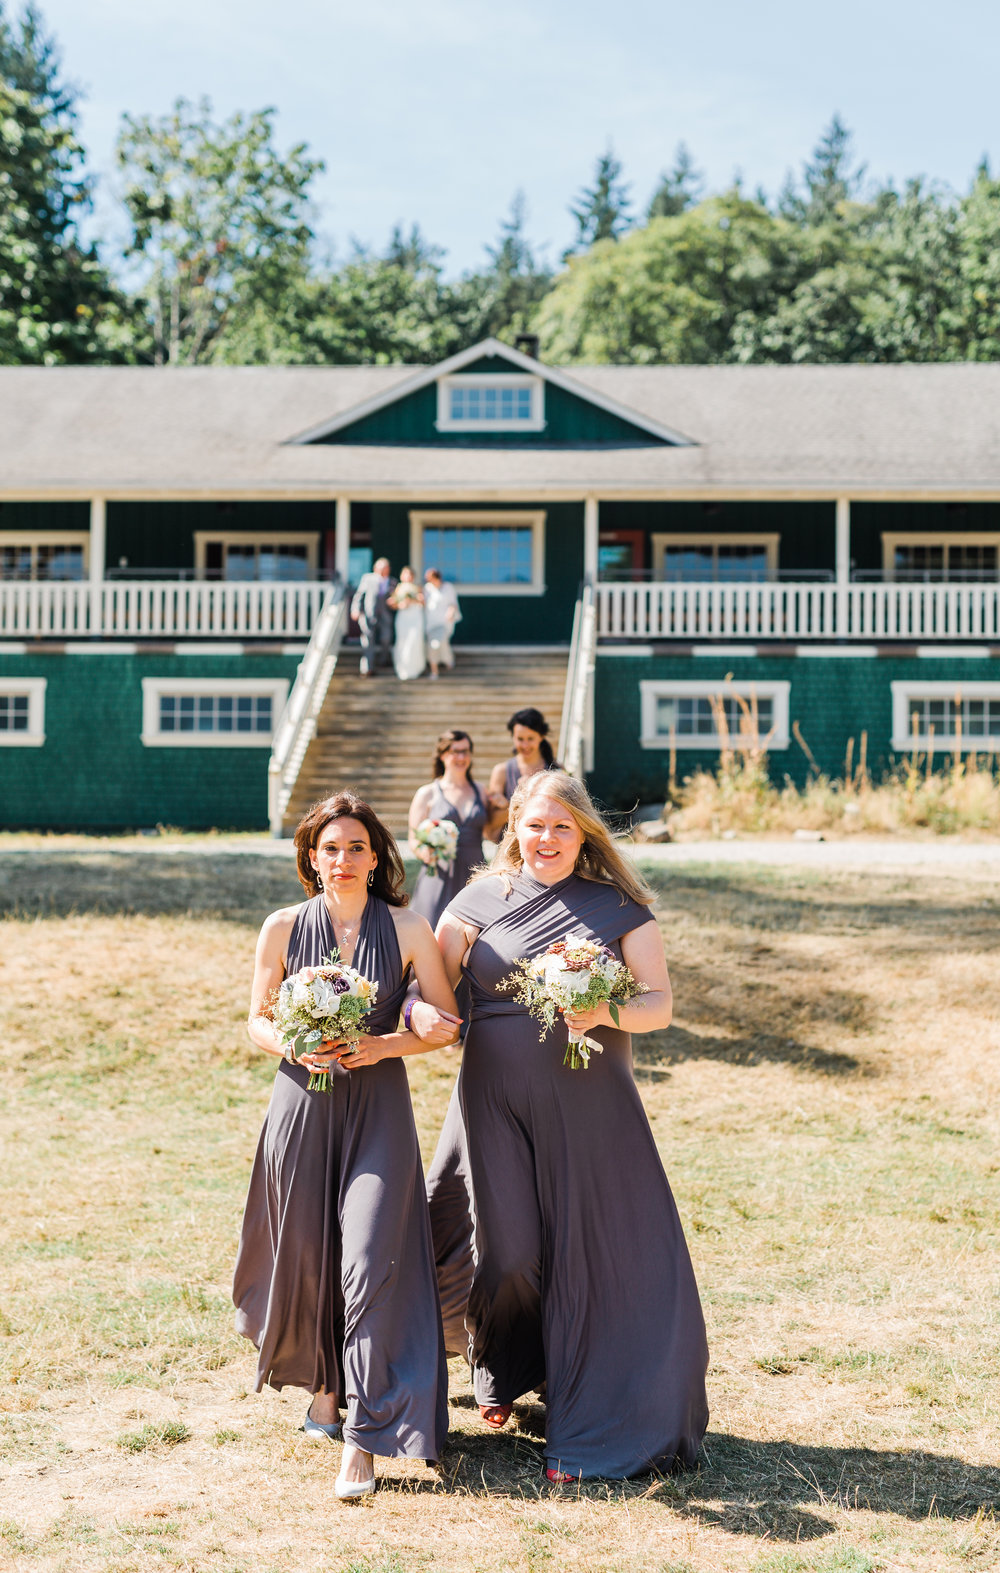 Camp Fircom Wedding - Vancouver Wedding Photographer & Videographer - Sunshine Coast Wedding Photos - Sunshine Coast Wedding Photographer - Jennifer Picard Photography - IMG_0552.jpg